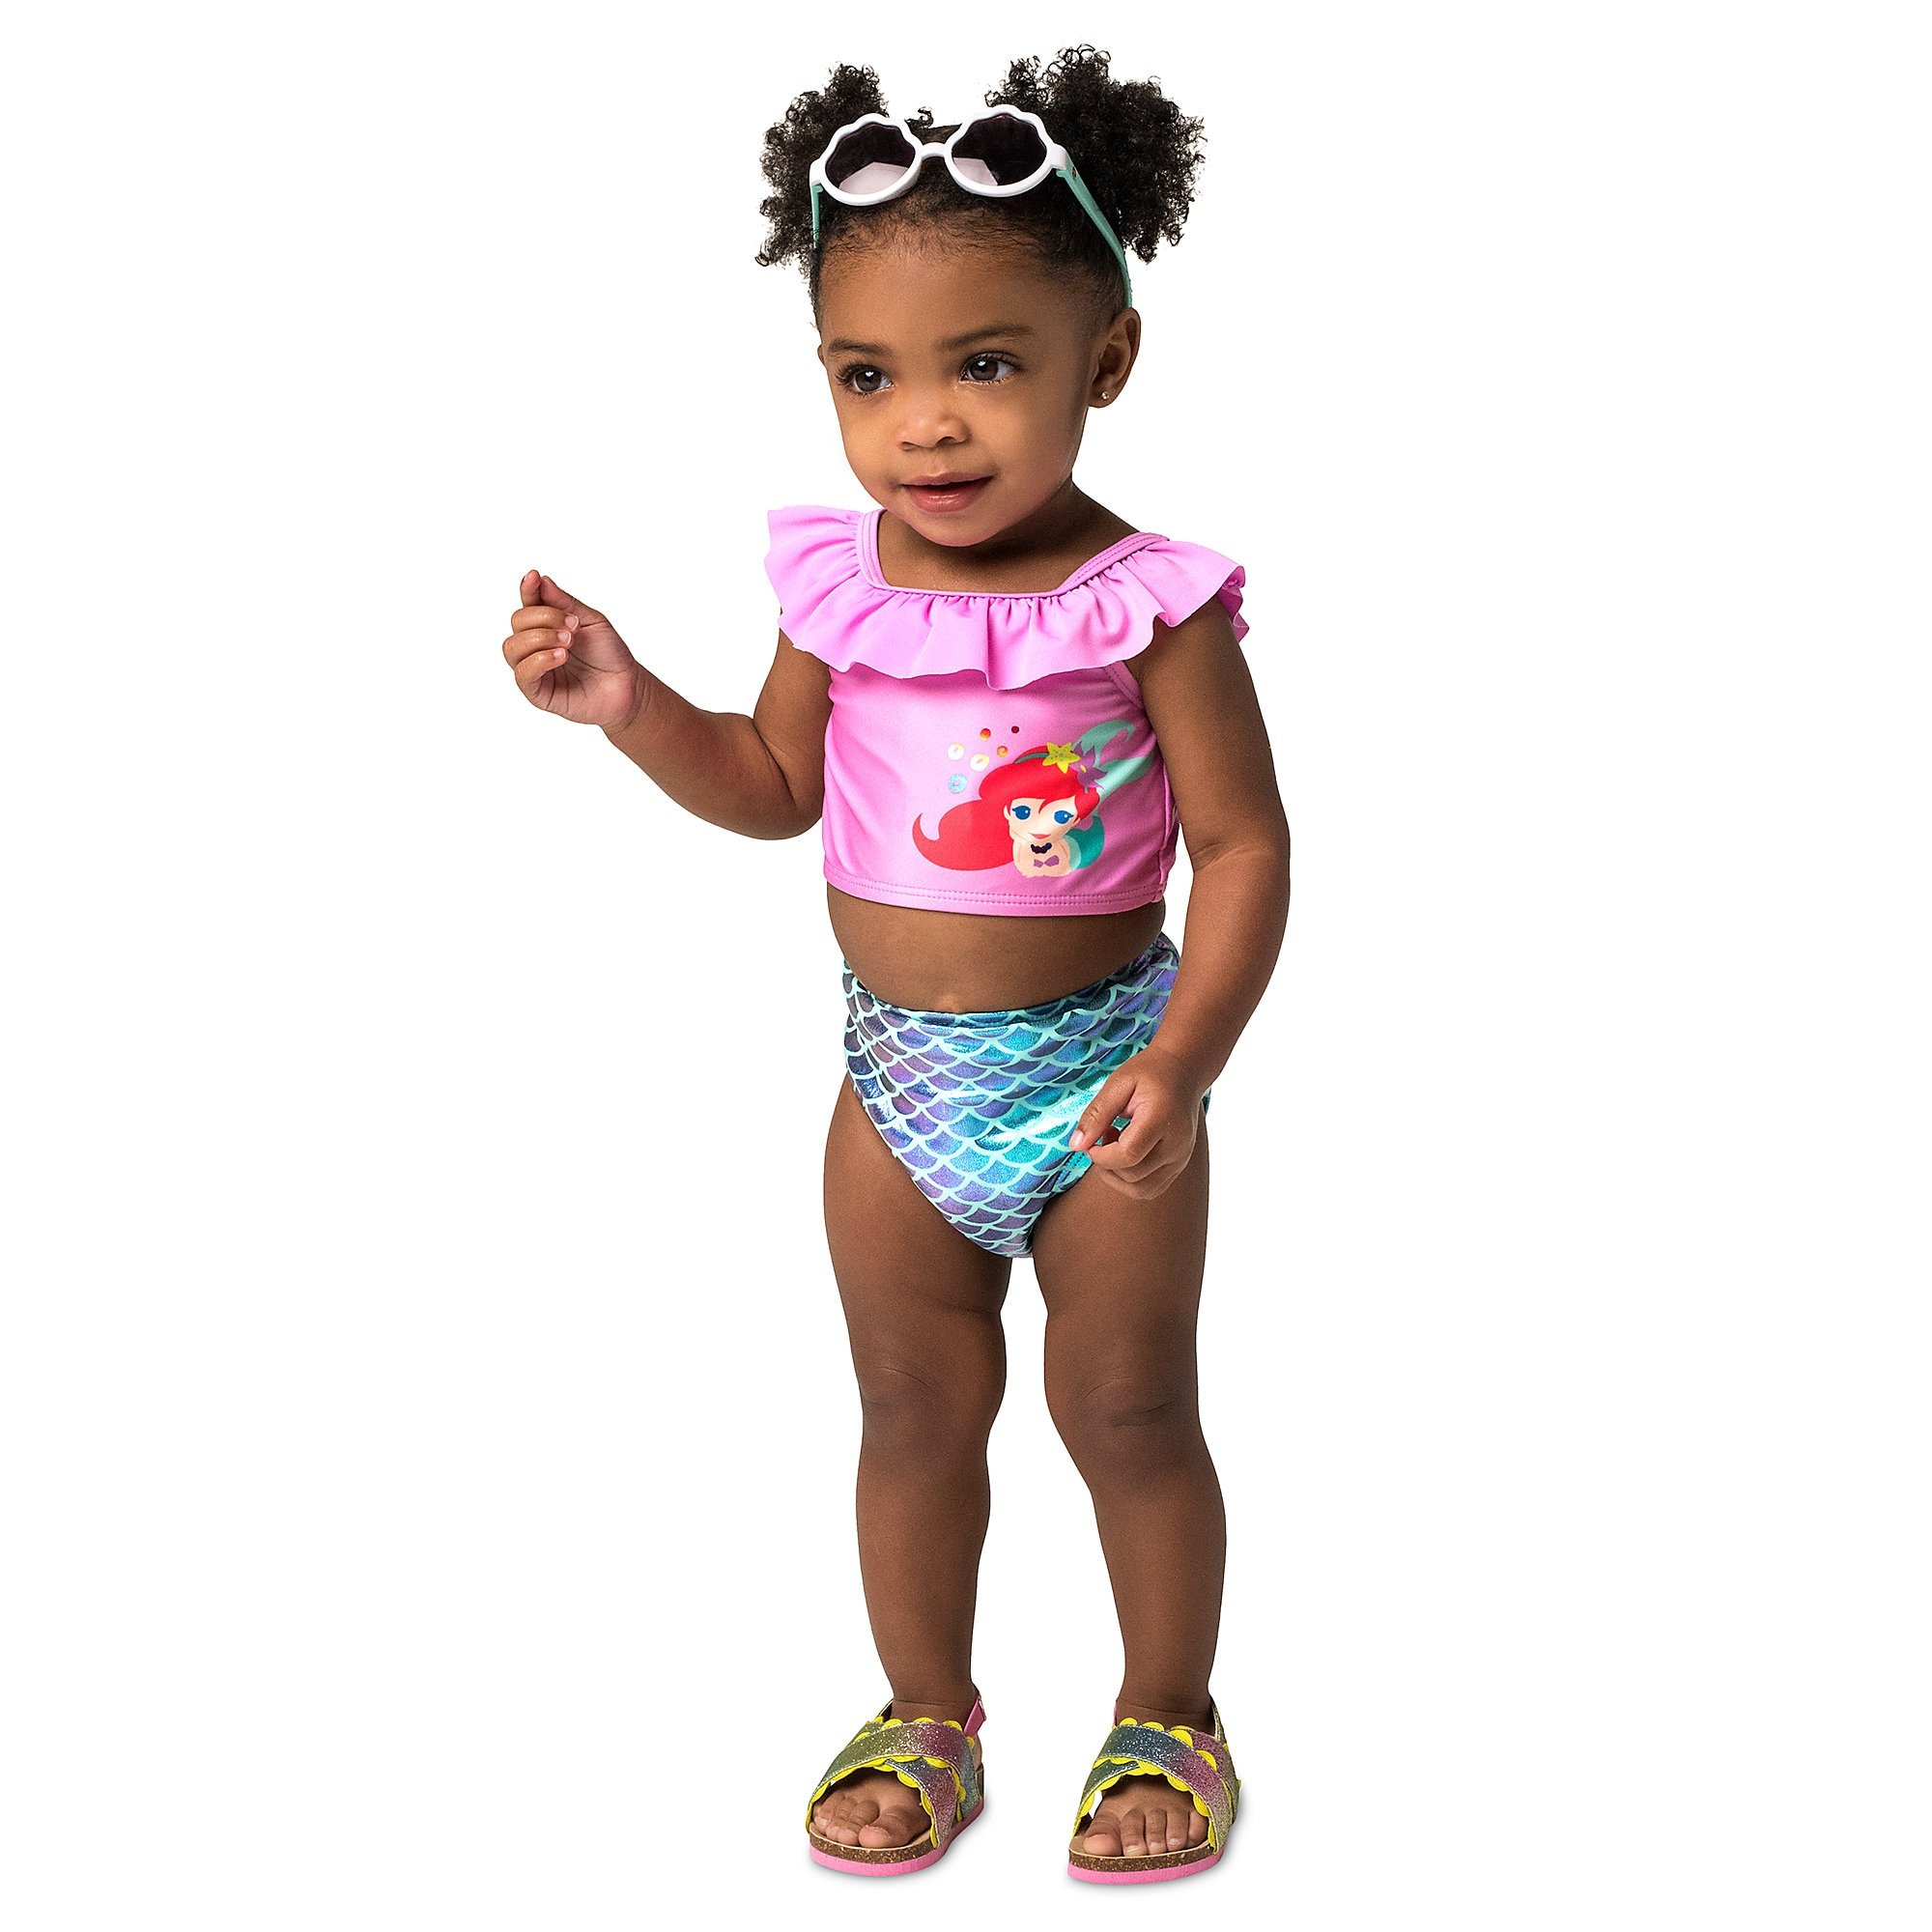 Ariel Two-Piece Swimsuit Swimwear Collection for Baby